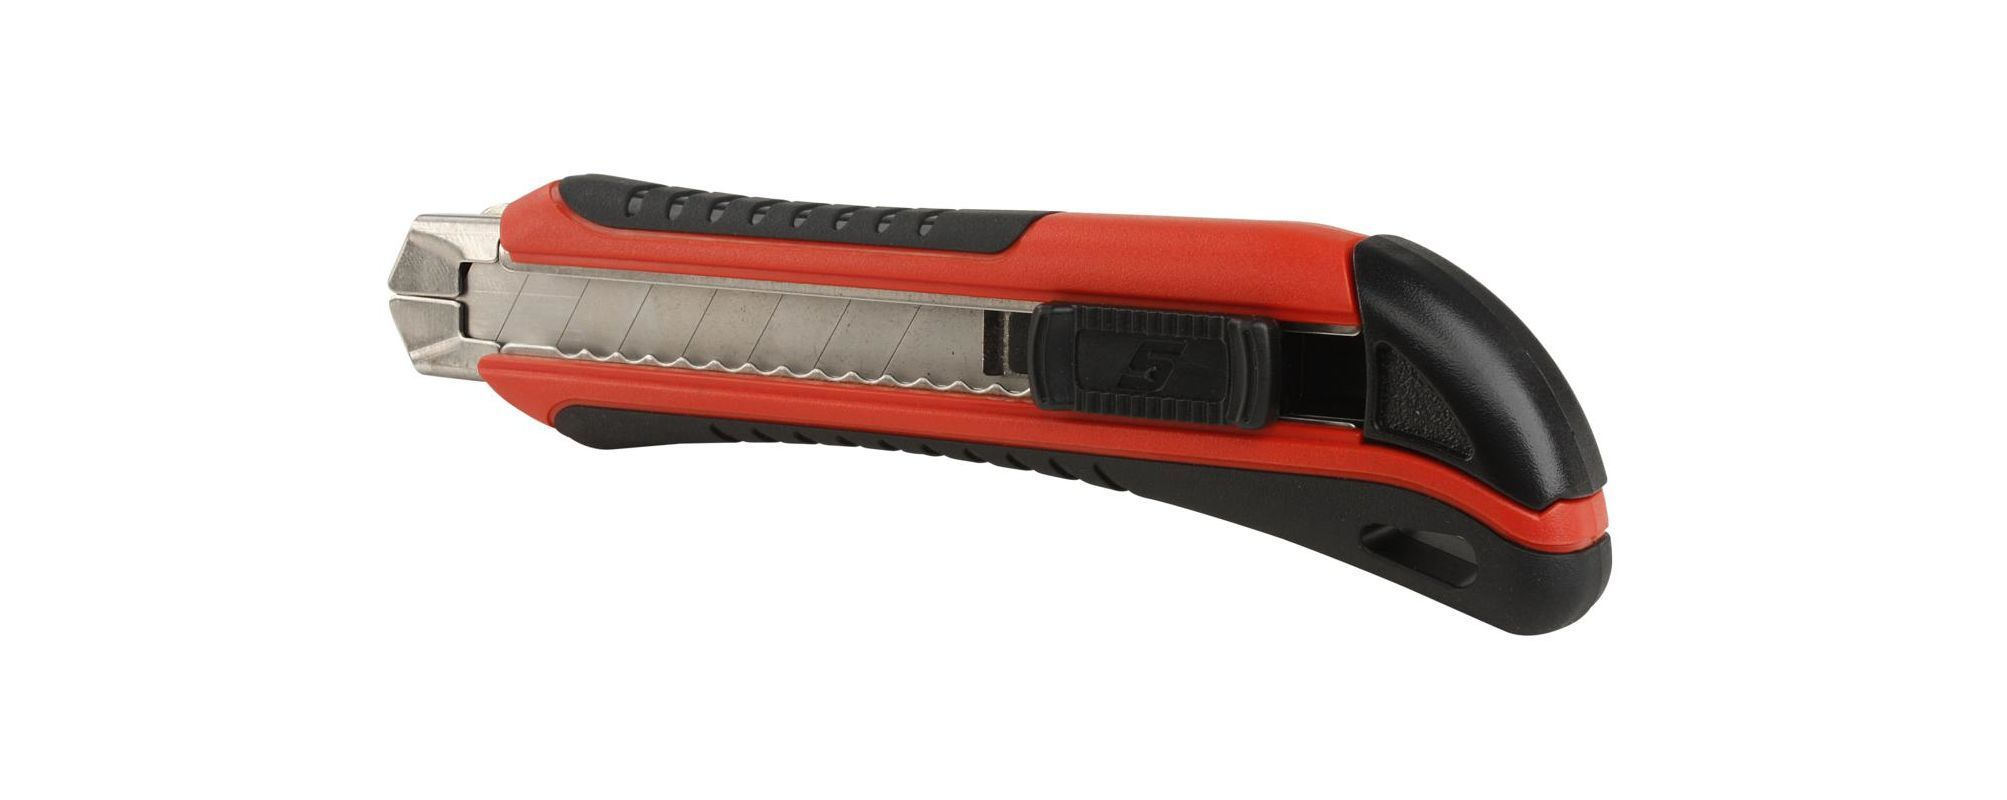 Snap On 870248 18mm Auto Loading Off Knife Hand Tools Utility Knives